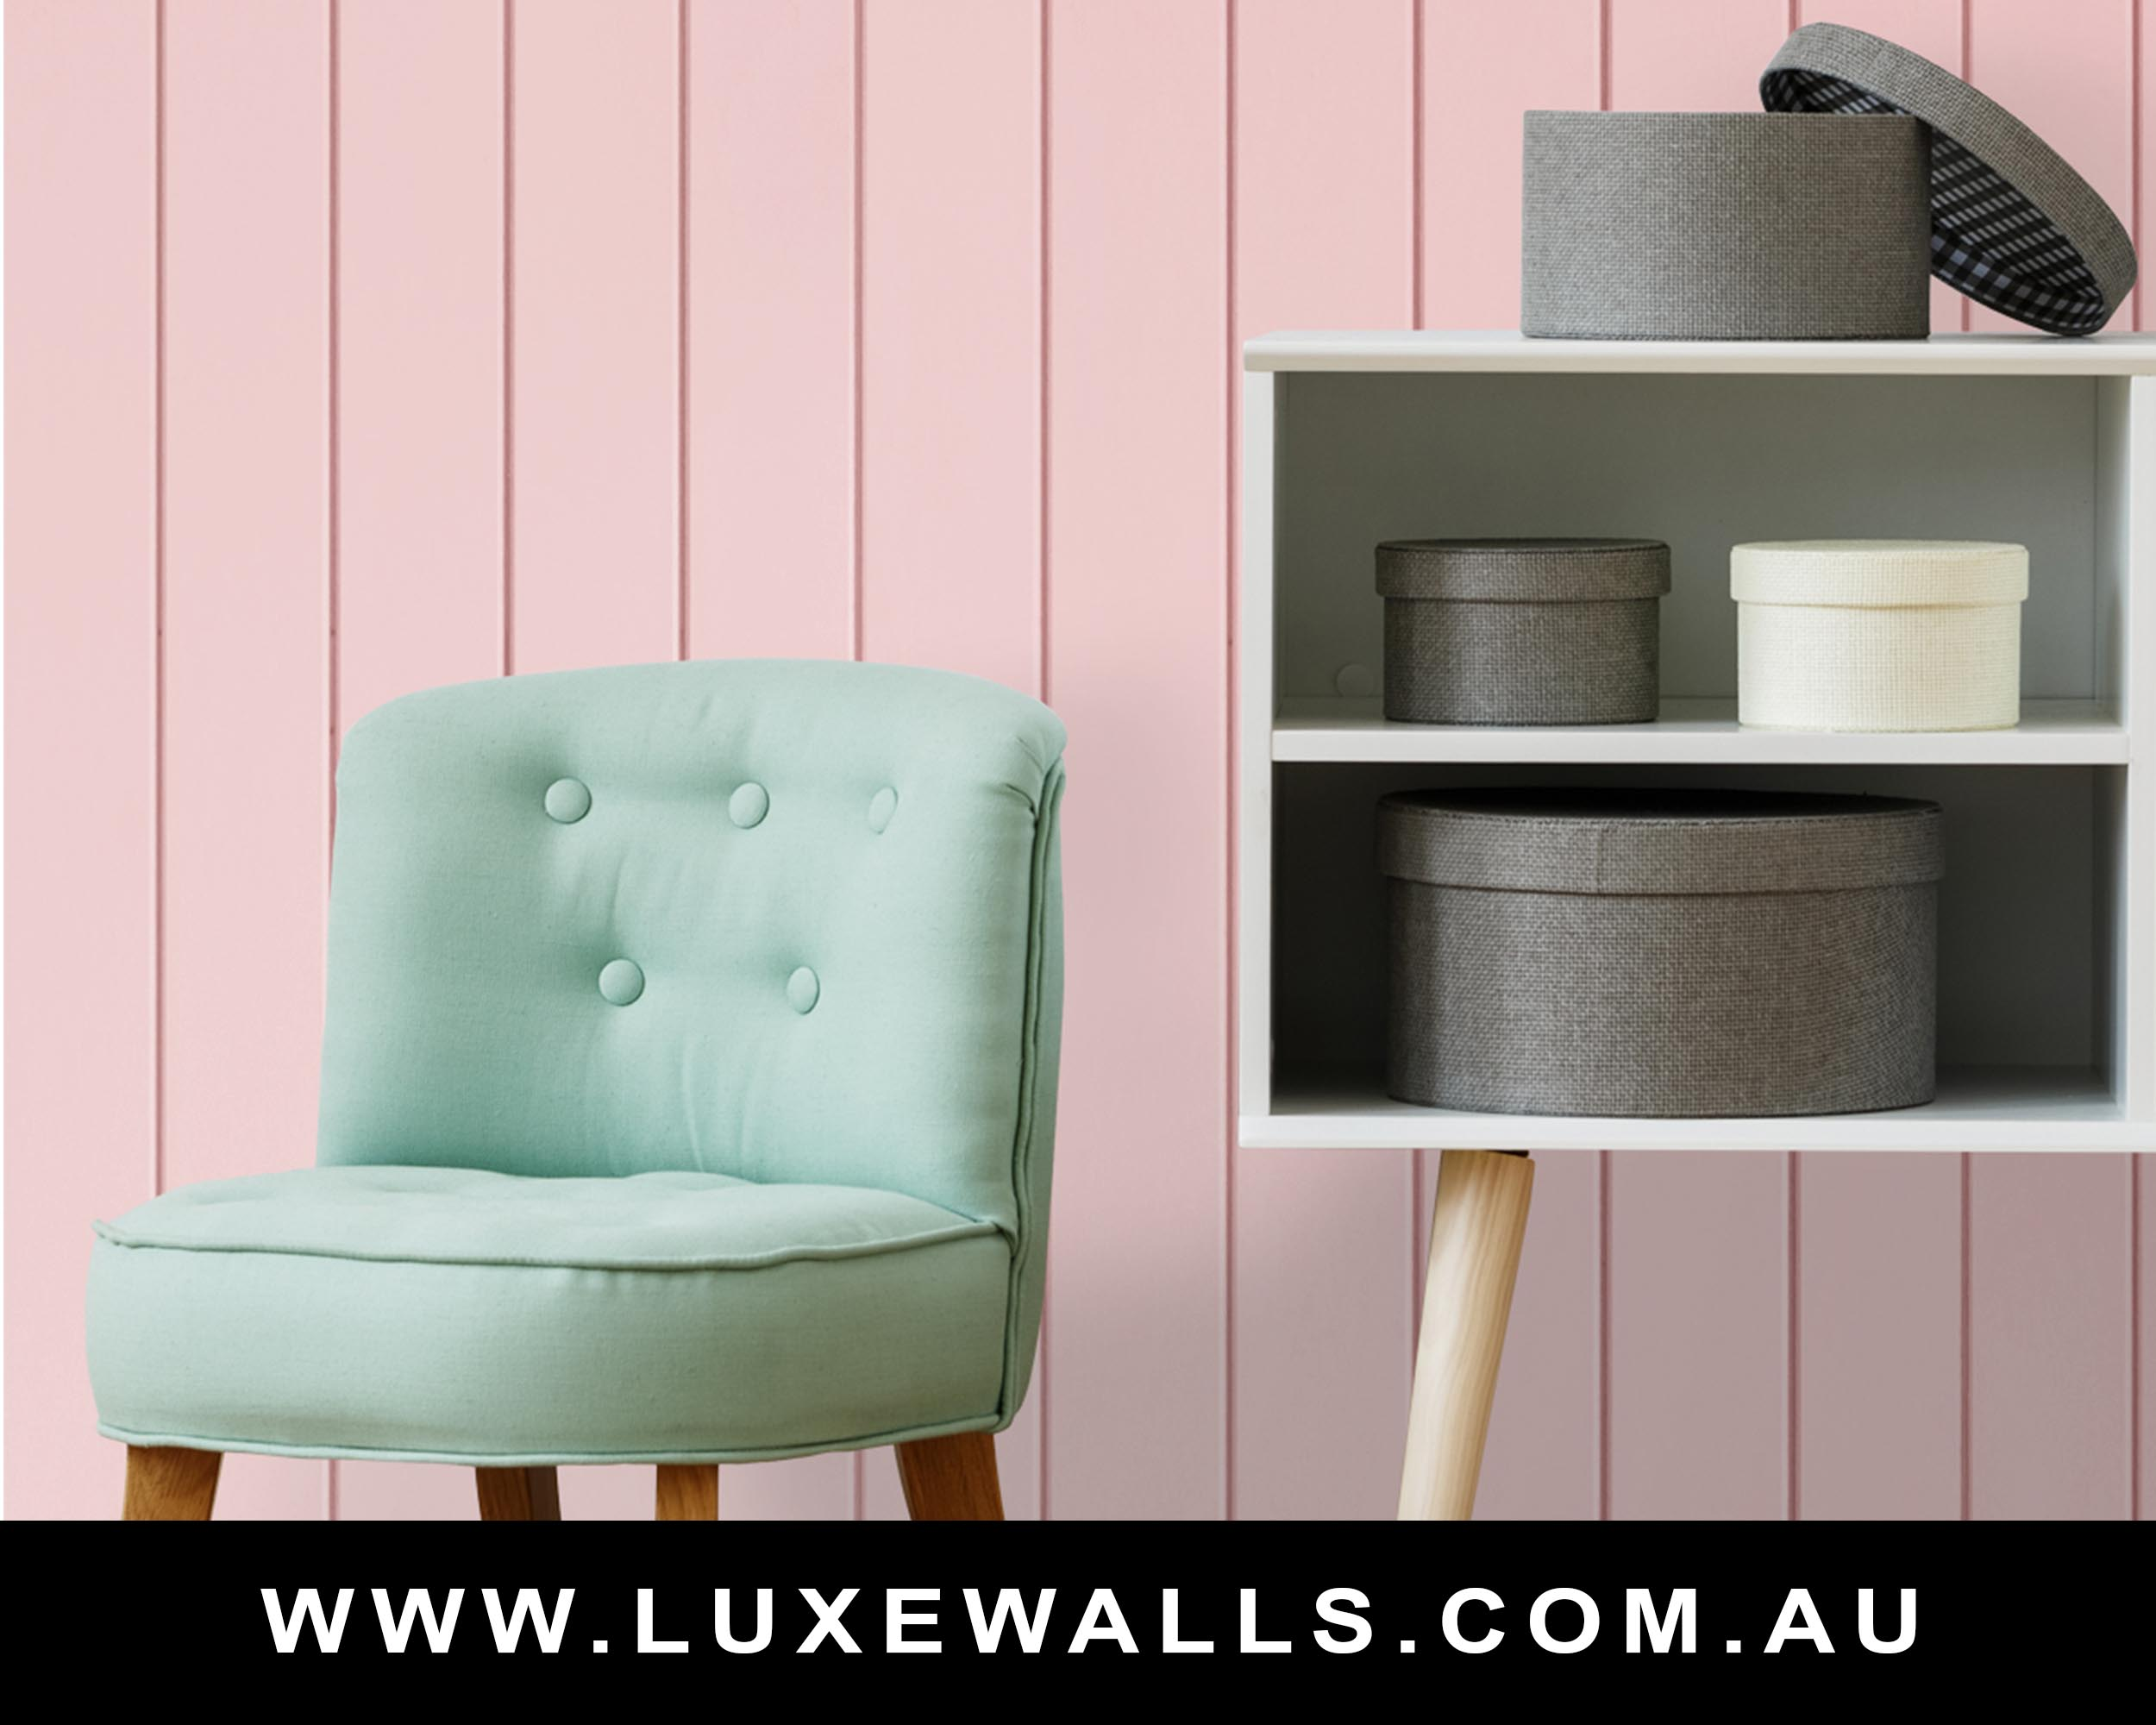 LUXE-WALLS - LUXE-WALLS